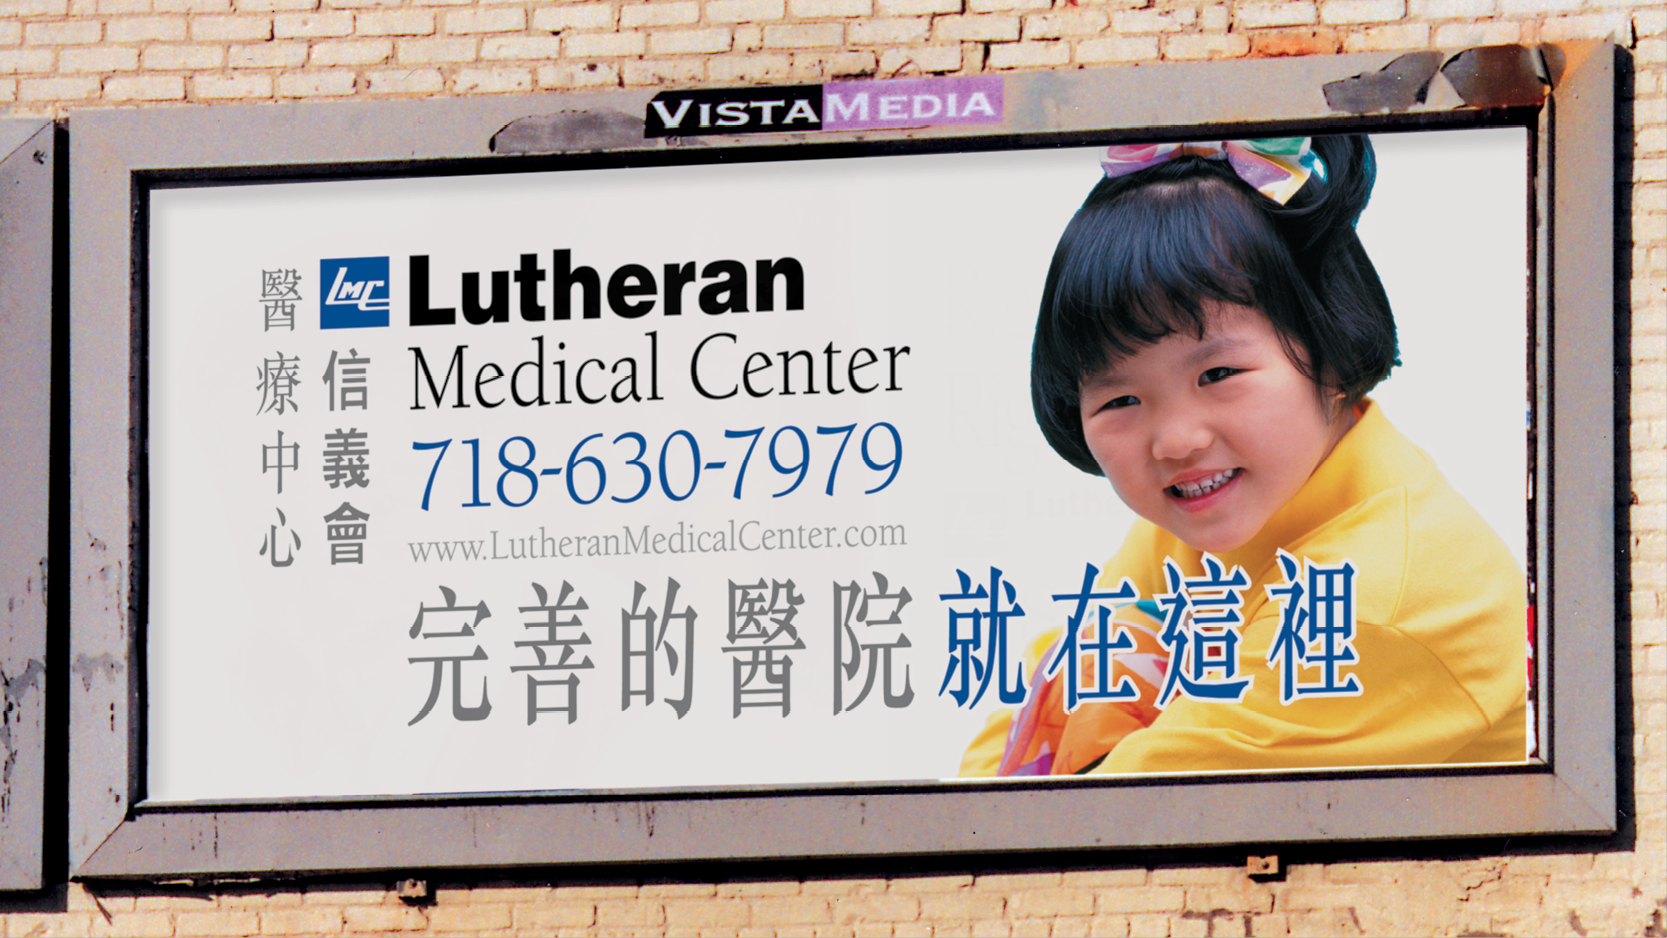 Lutheran Medical Center Billboard